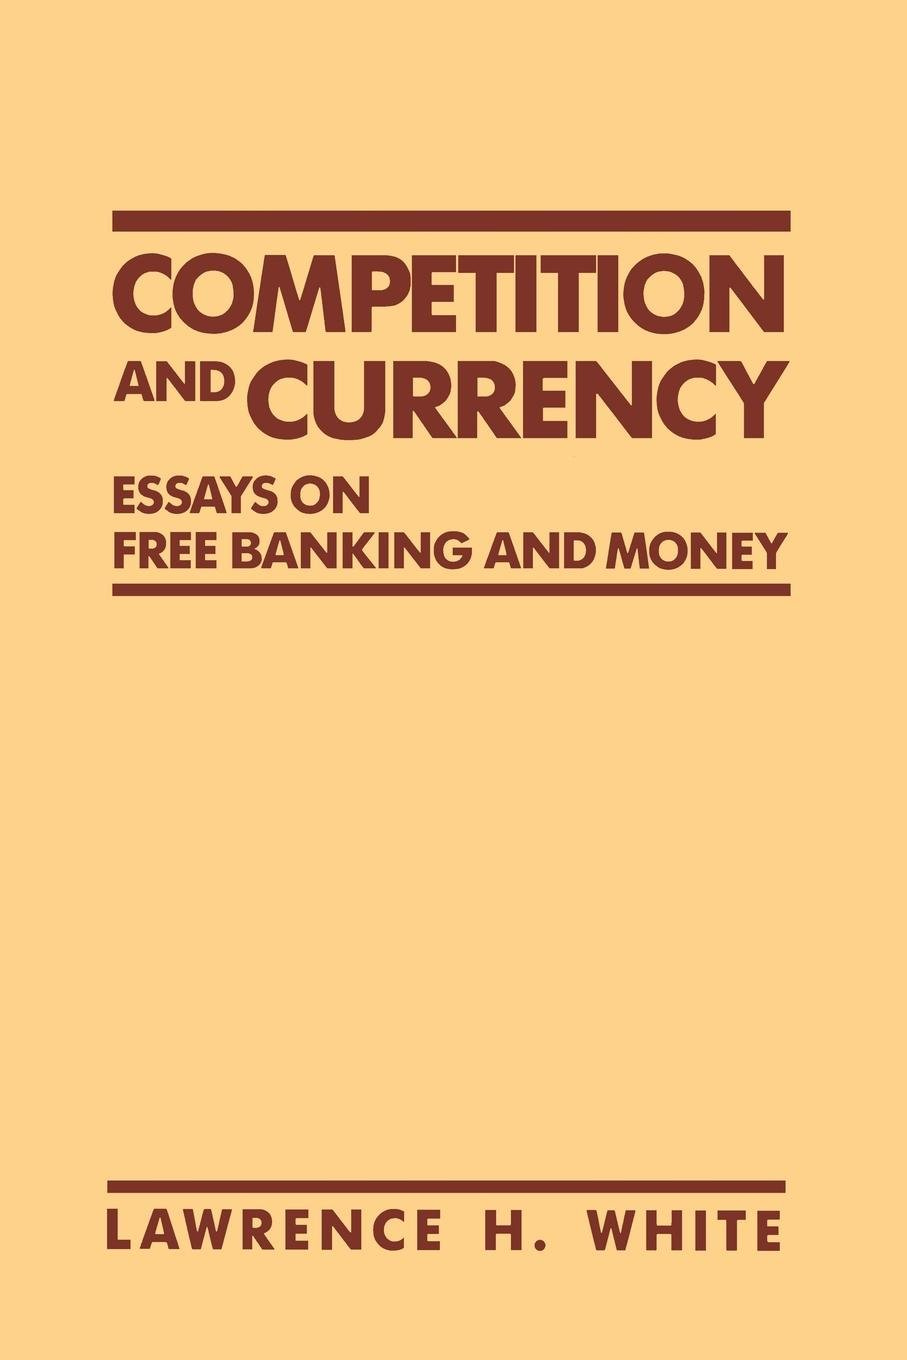 competition and currency essays on banking and money competition and currency essays on banking and money lawrence h white 9780814792476 com books